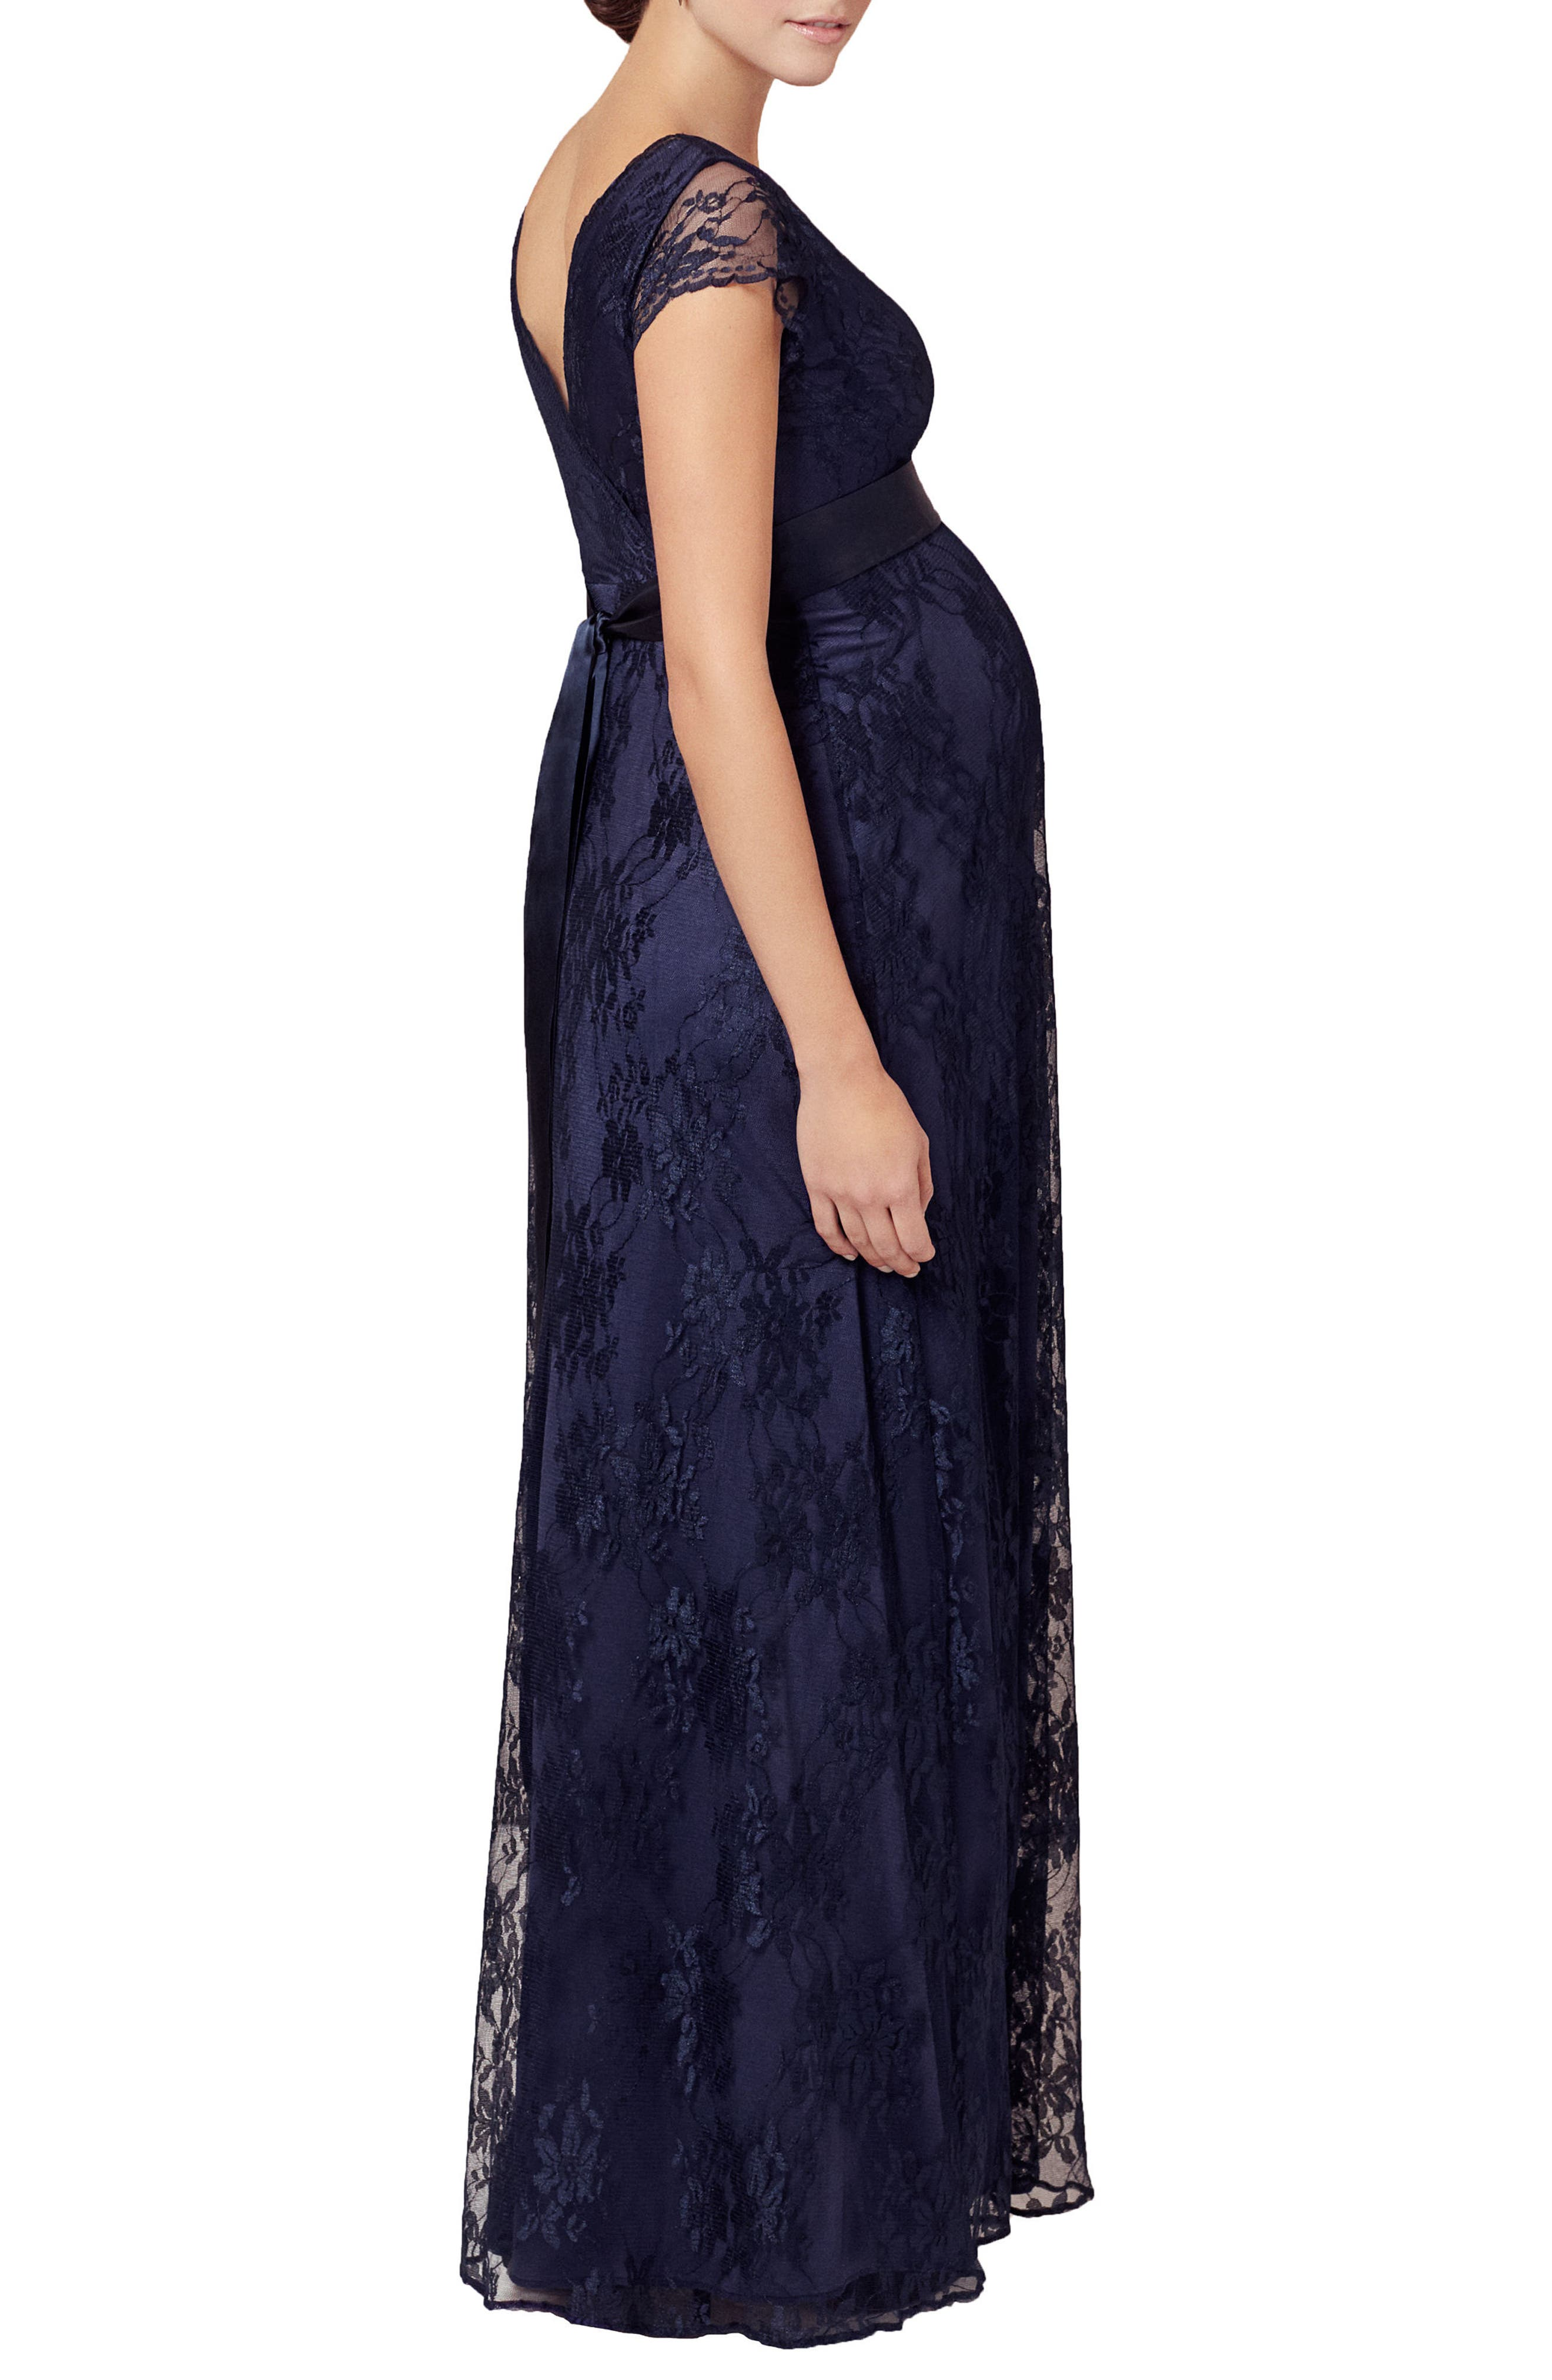 Eden Lace Maternity Gown,                             Alternate thumbnail 3, color,                             Arabian Nights